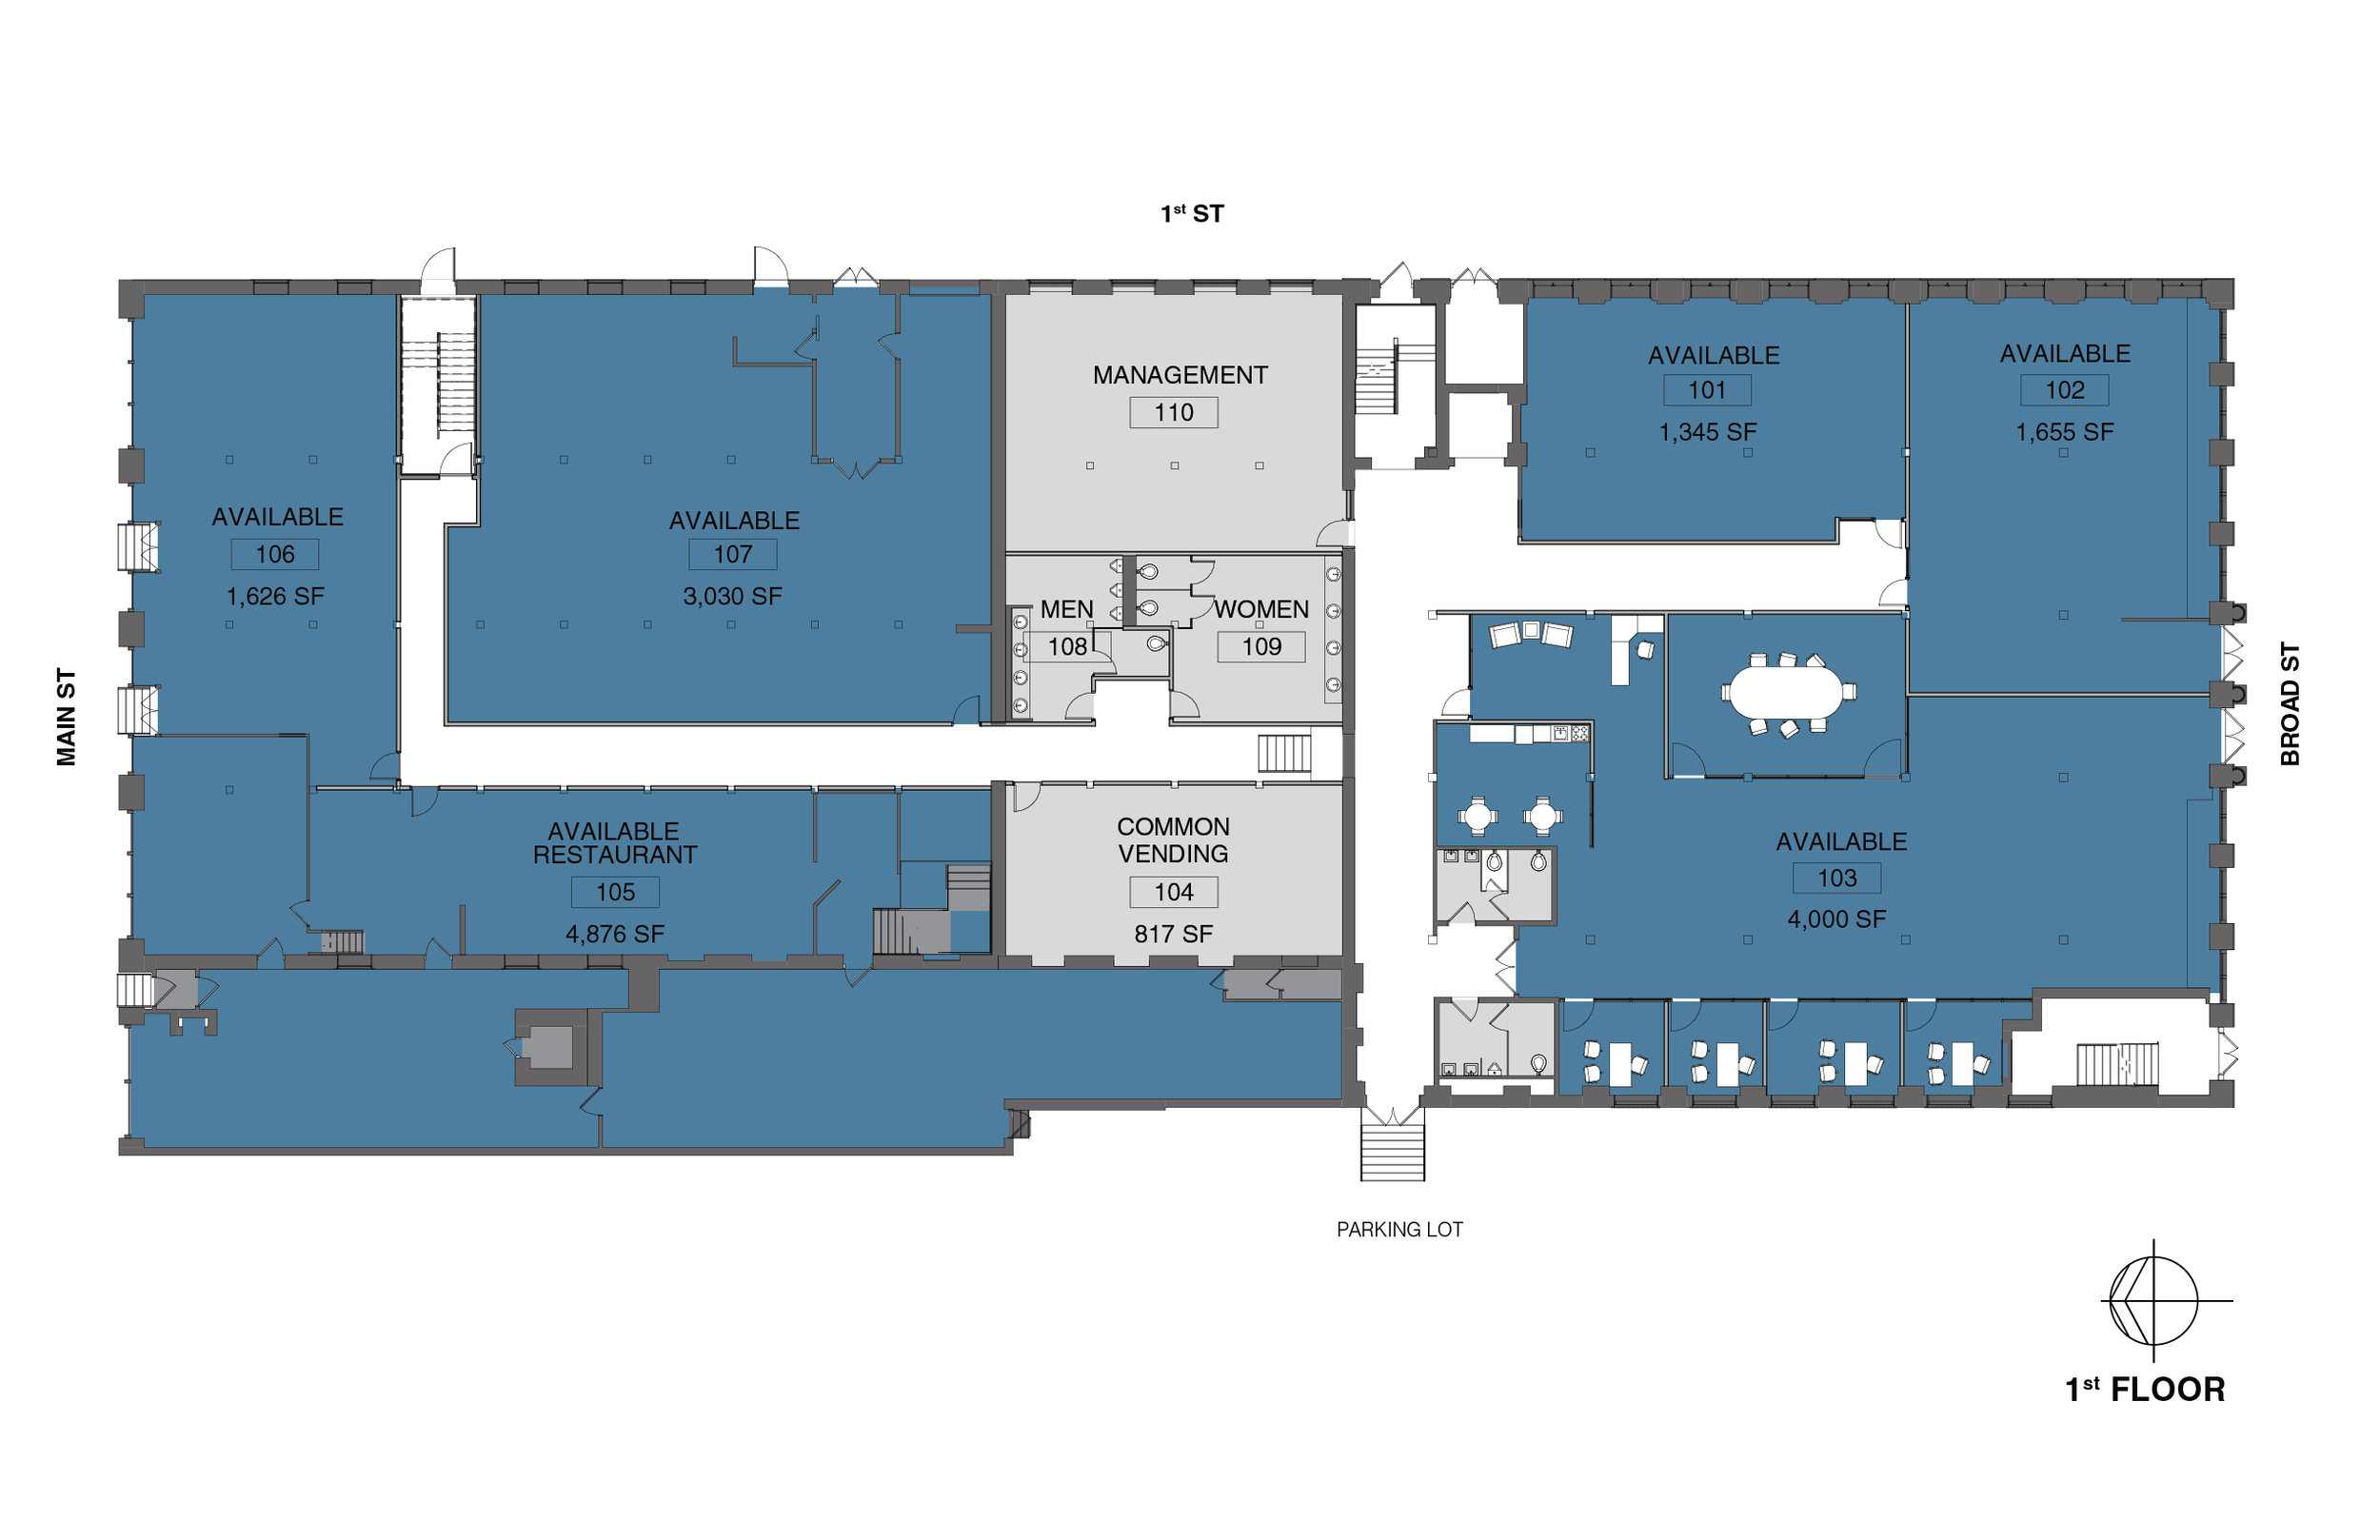 DOYLE_2018-03-09  PROPOSED TENANT SPACES-01.jpg